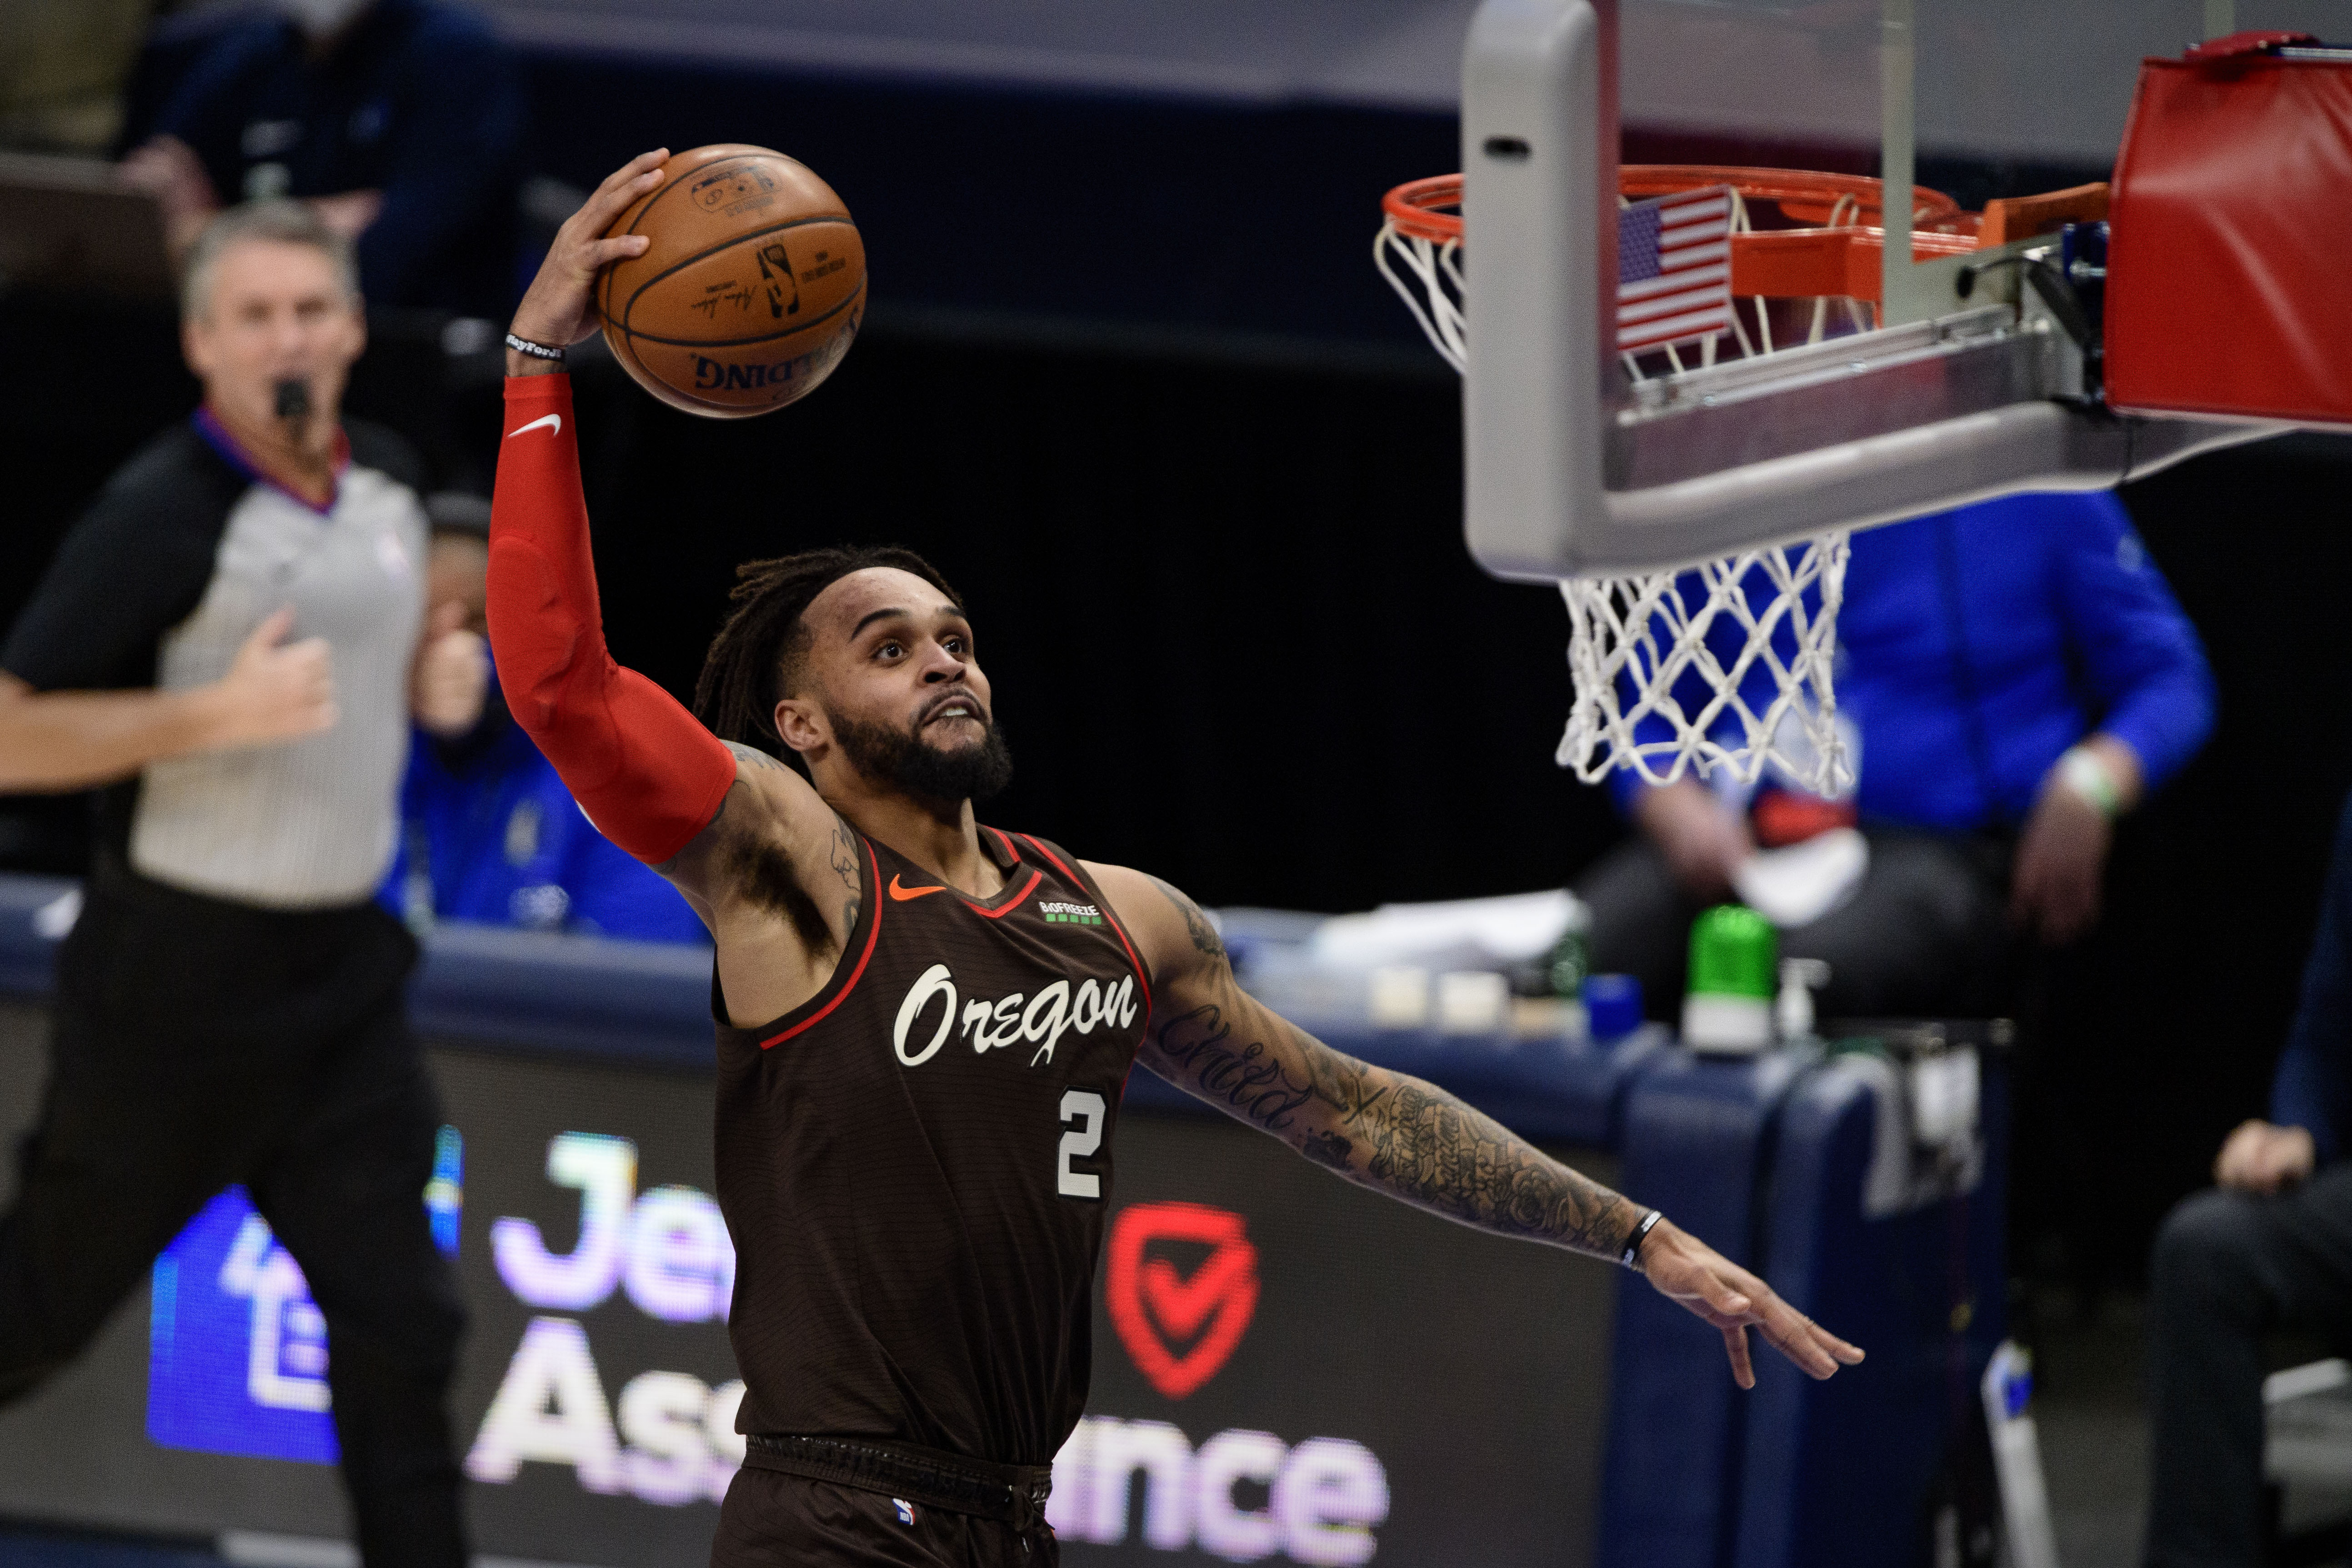 Feb 14, 2021; Dallas, Texas, USA; Portland Trail Blazers guard Gary Trent Jr. (2) dunks the ball against the Dallas Mavericks during the second half at the American Airlines Center.